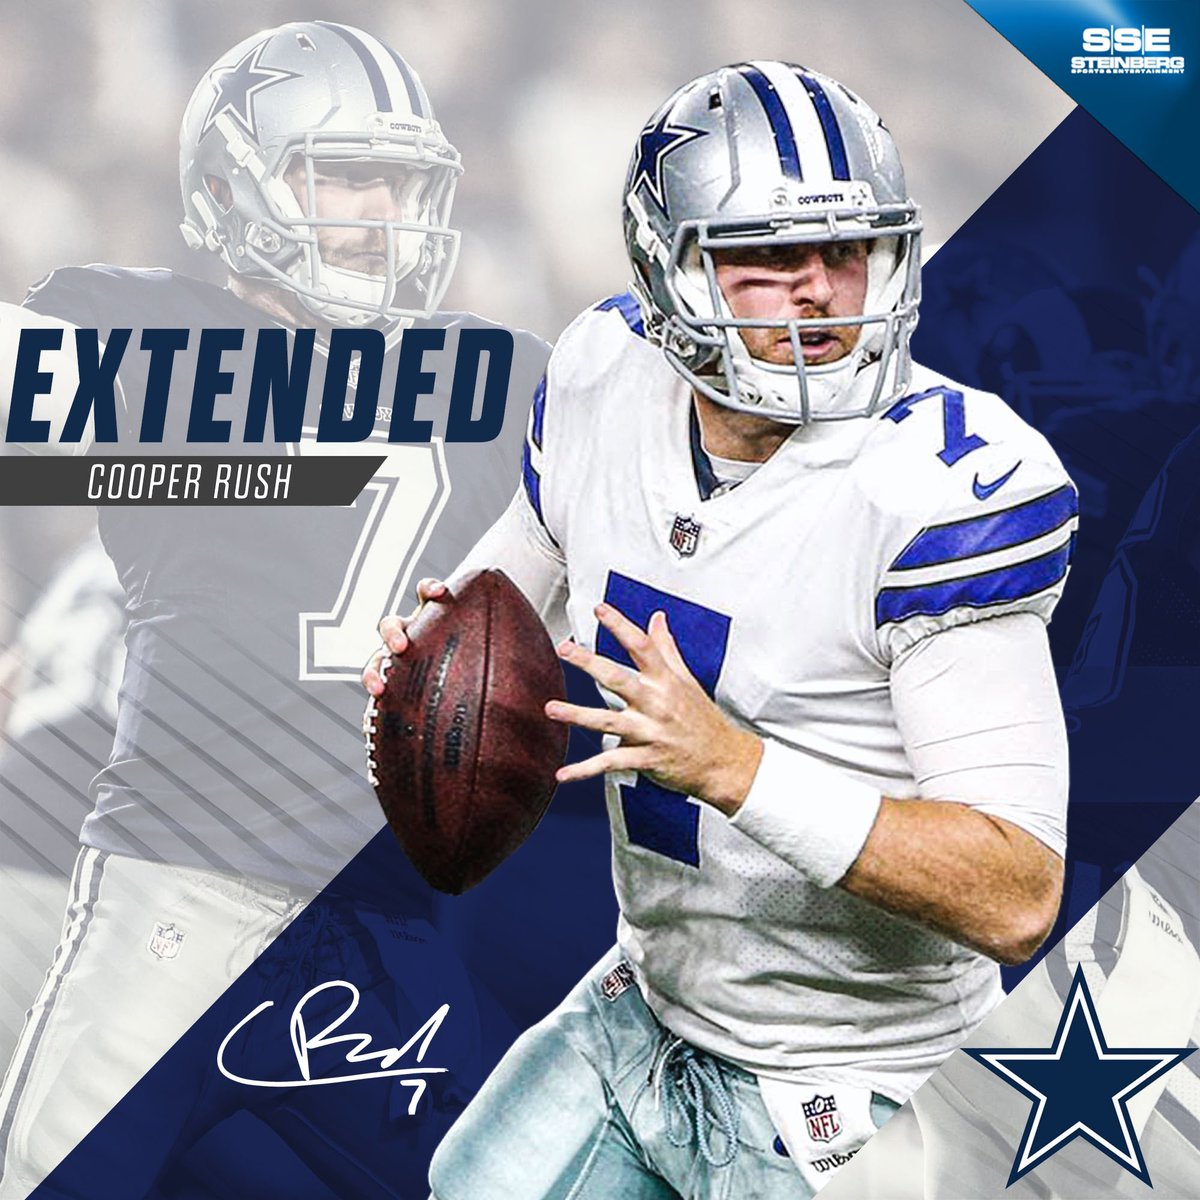 Congratulations to @rush_cooper for signing a contract extension with the Dallas Cowboys! We're so proud of you Cooper, hard work pays off!  #DallasCowboys #CowboysNation https://t.co/ucOAwd00Xu